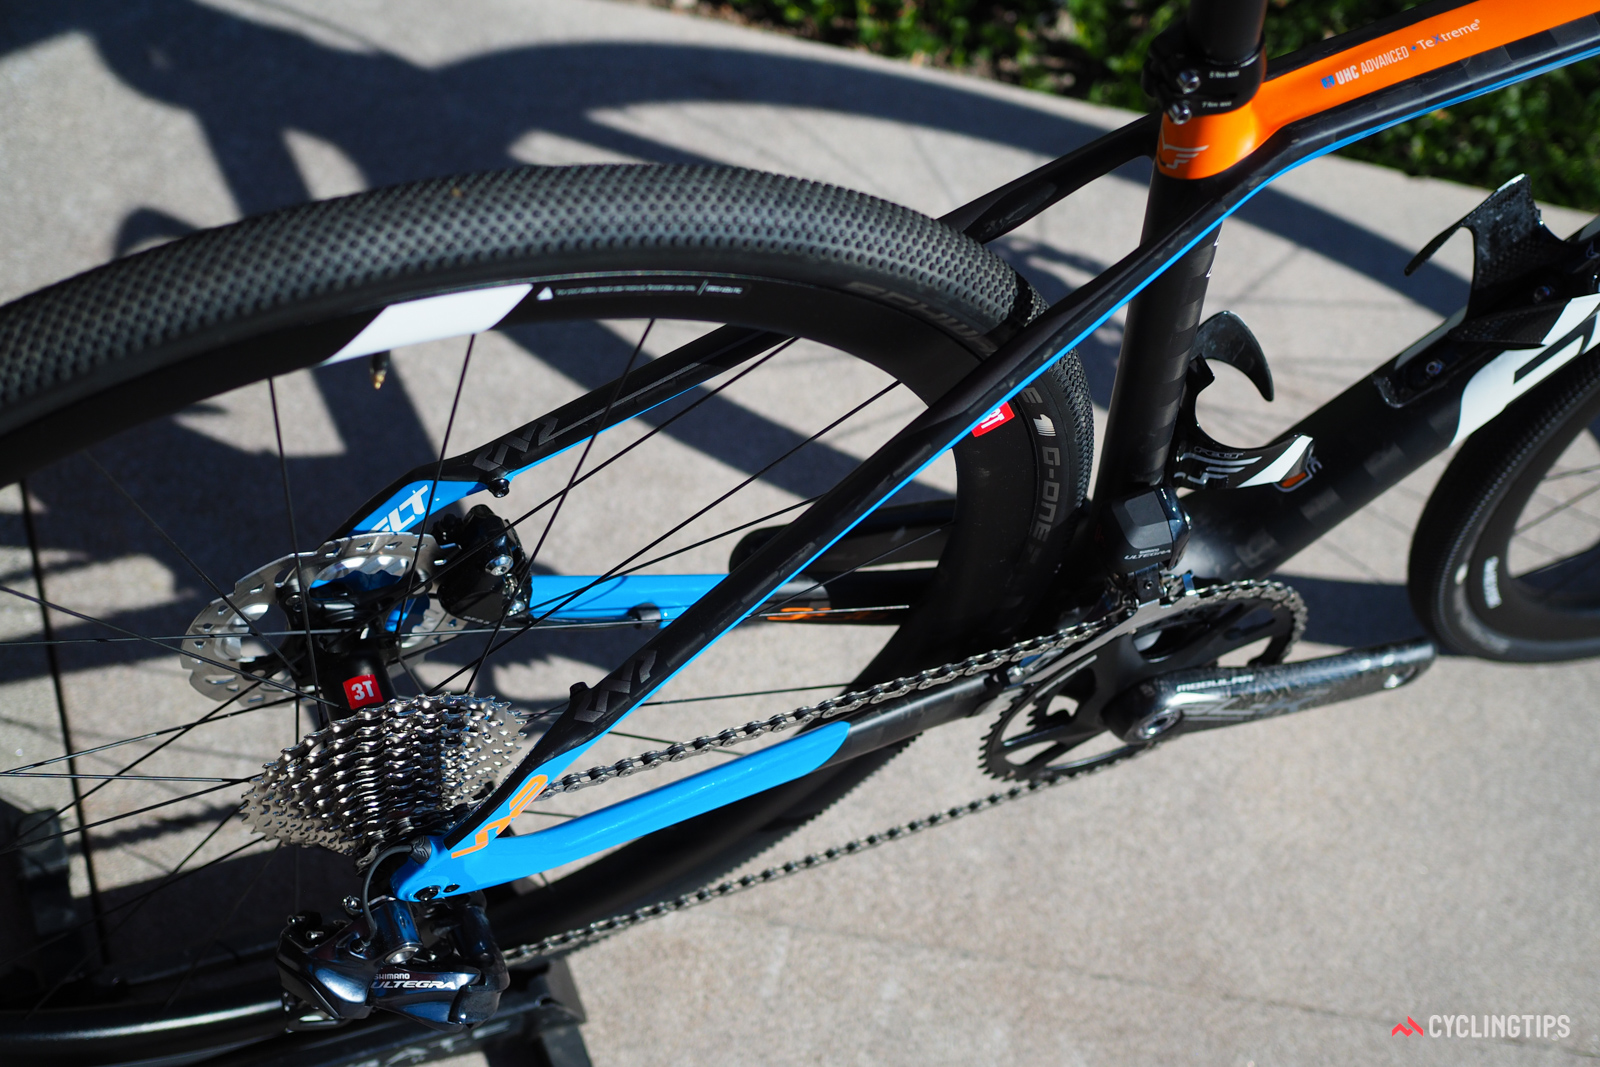 Whereas the FR seatstays are only modestly shaped, the ones on the VR feature more dramatic changes in cross-section.